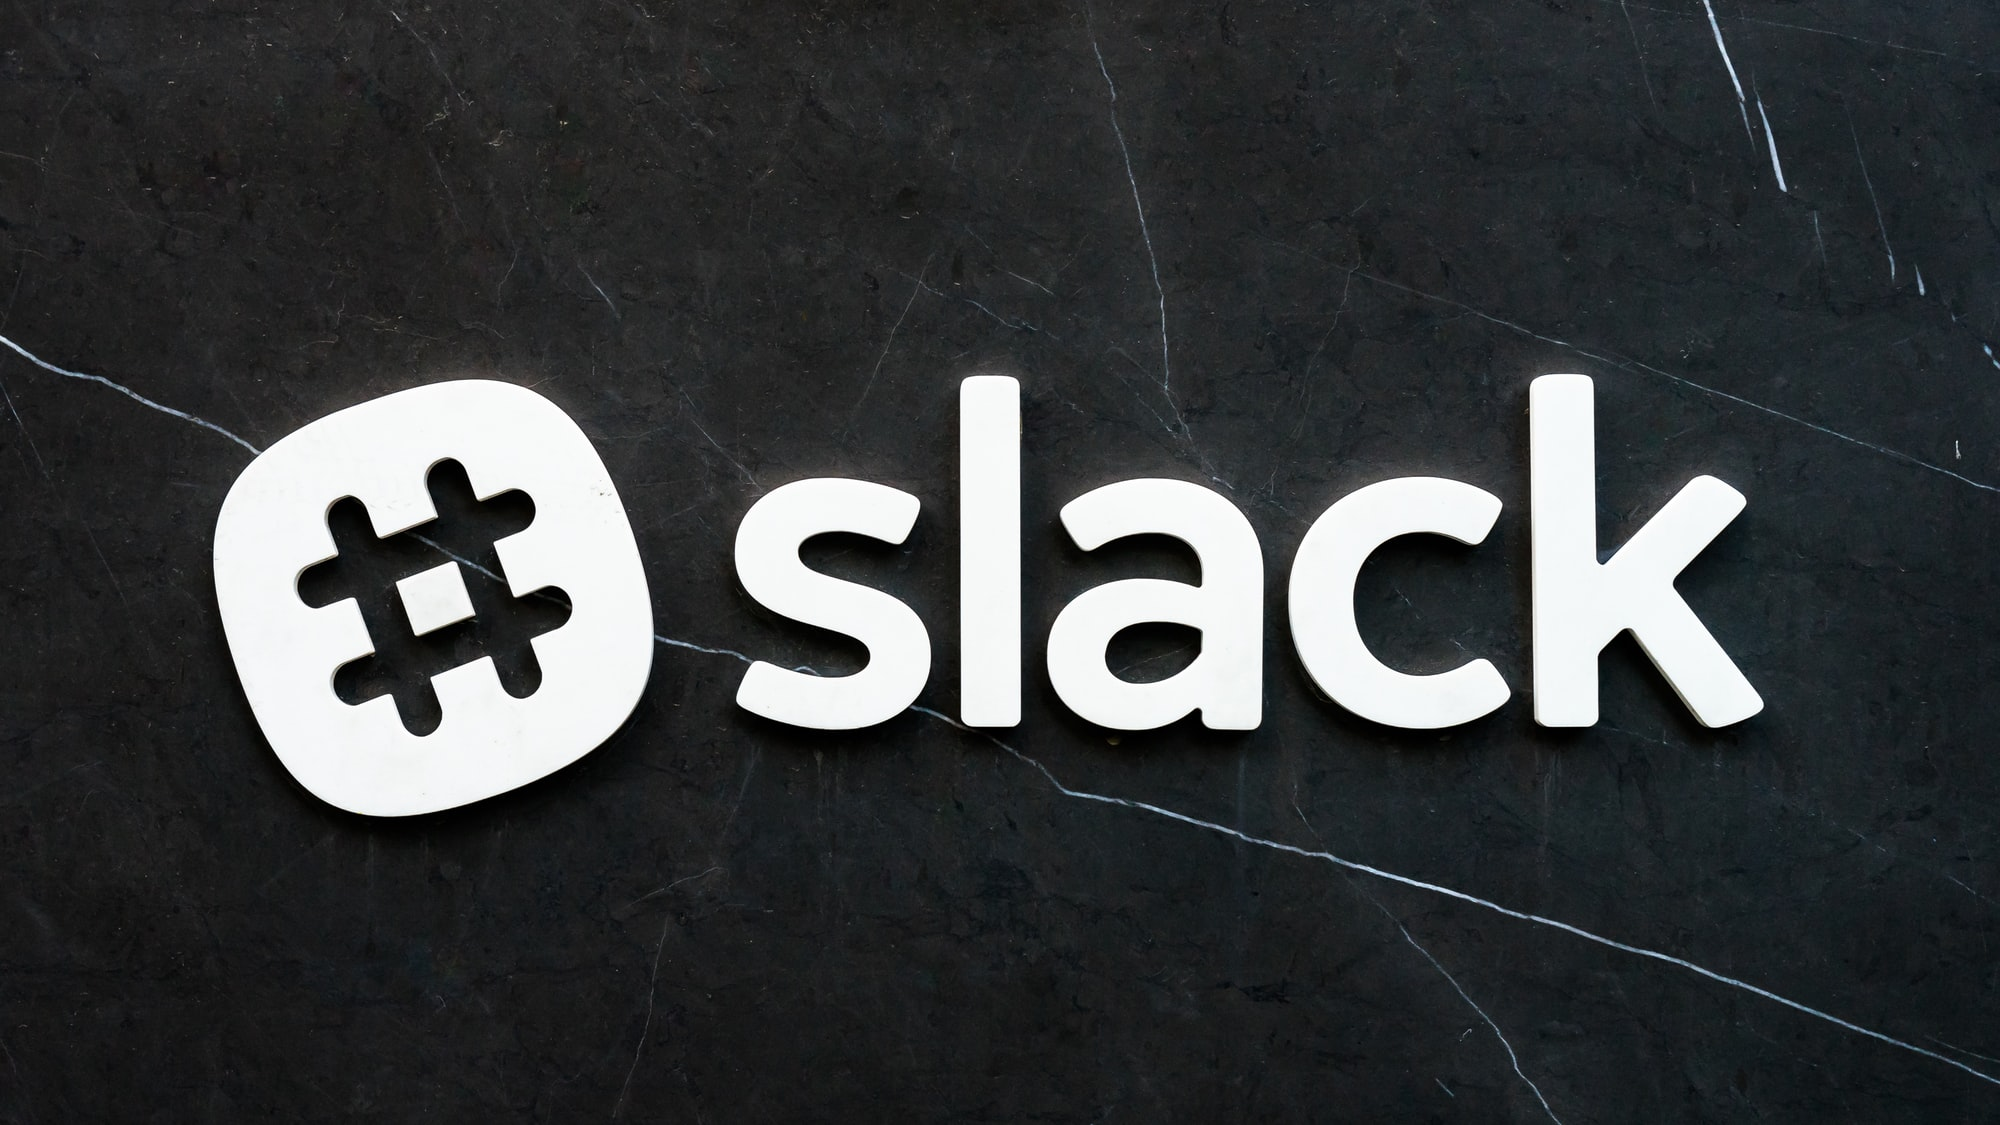 Global productivity spiked during Slack downtime